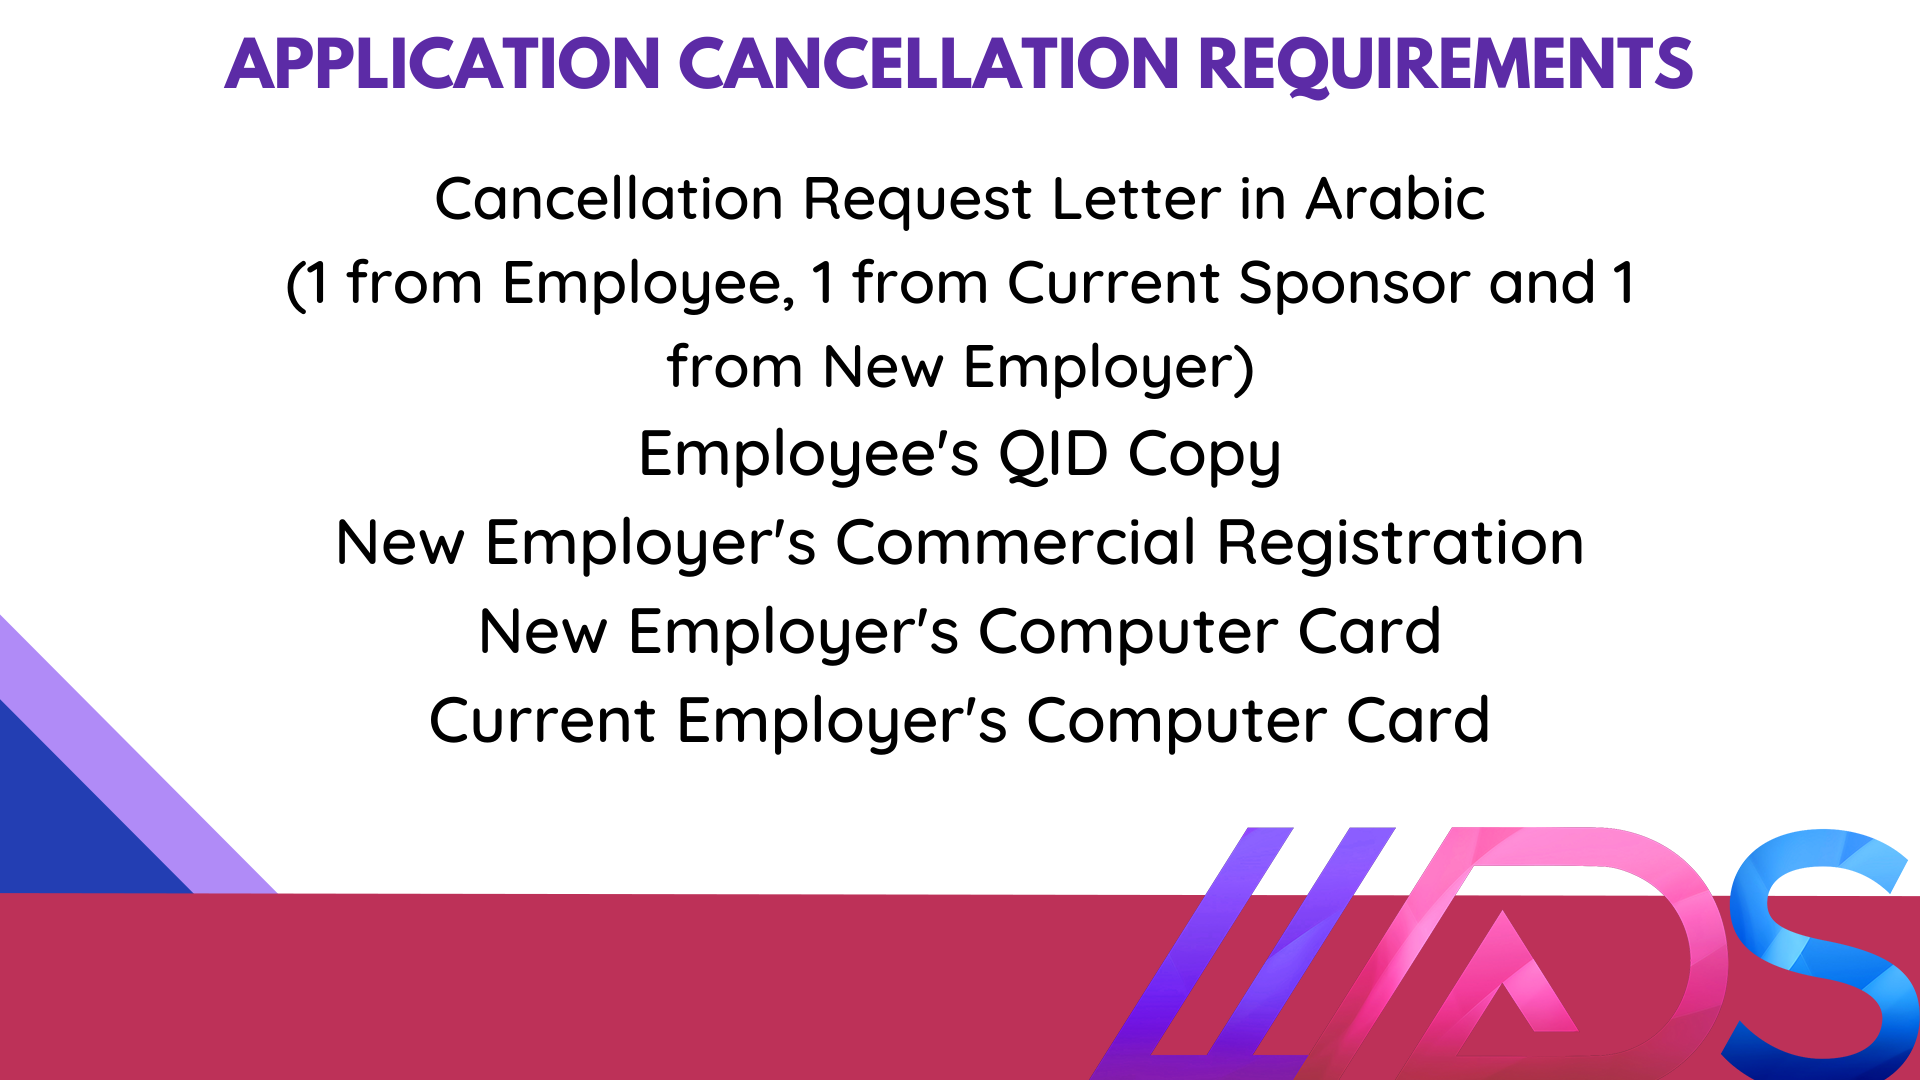 Application Cancellation Requirements